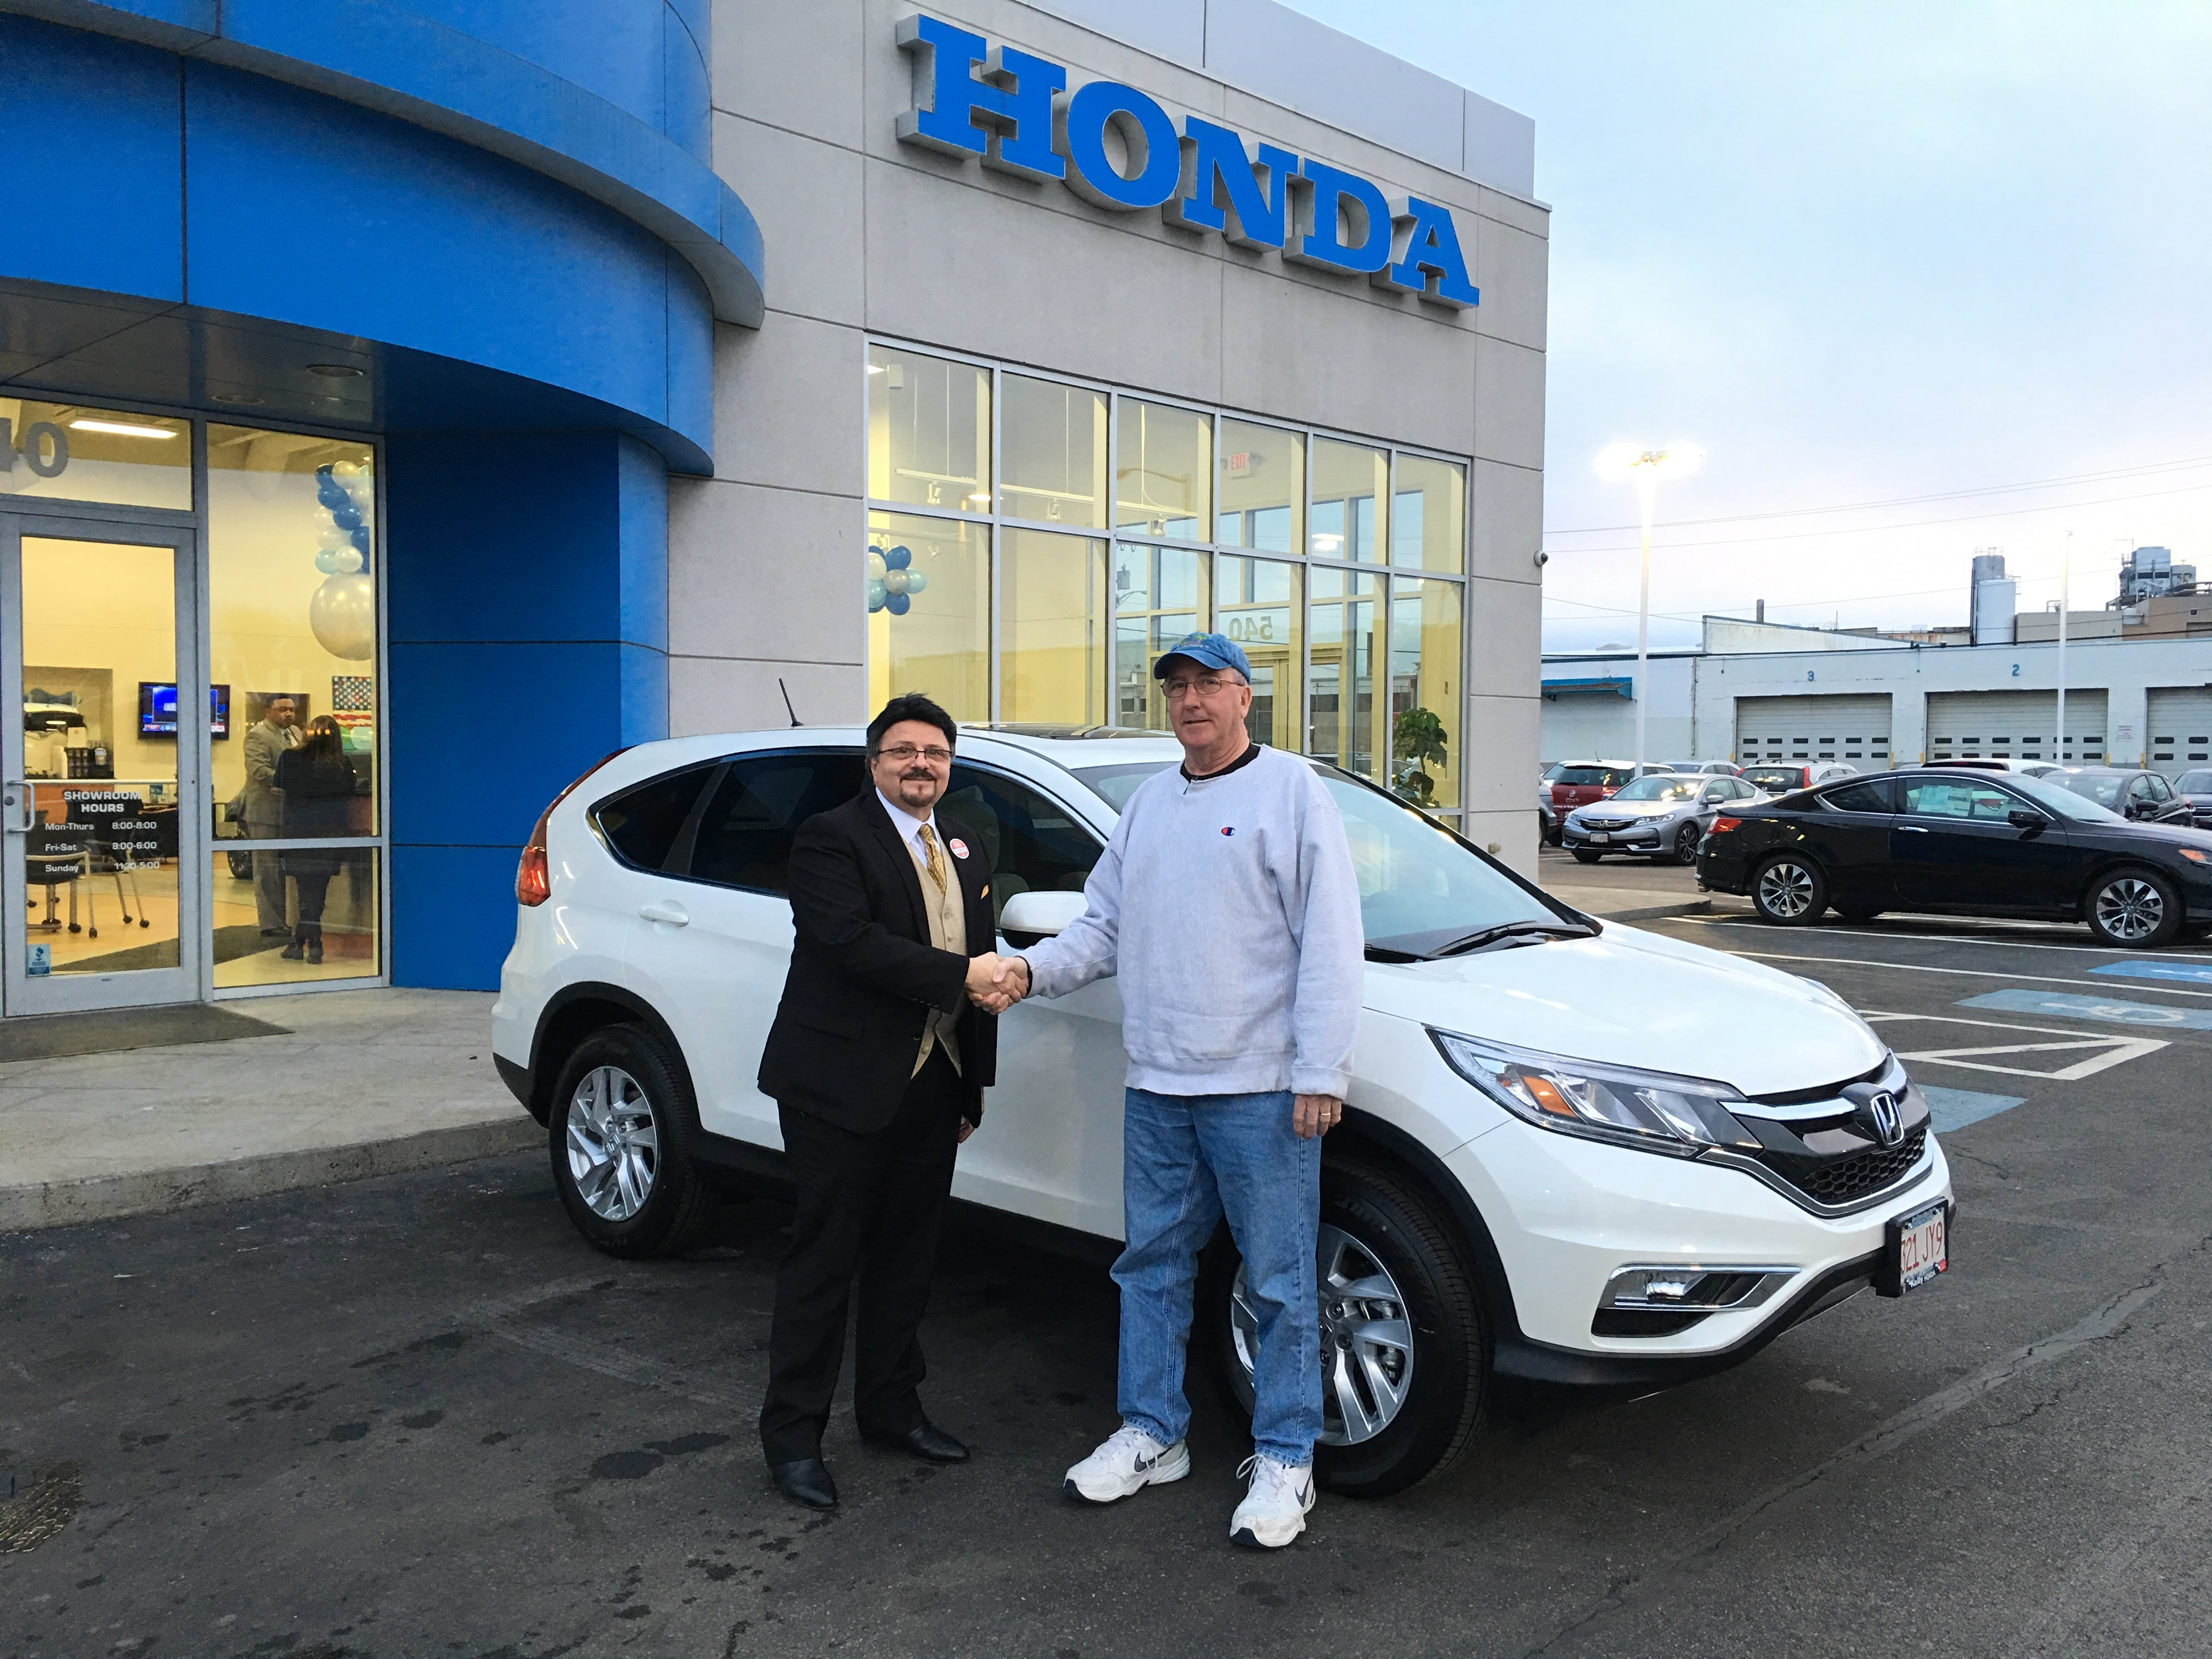 kelly honda in lynn ma 01905